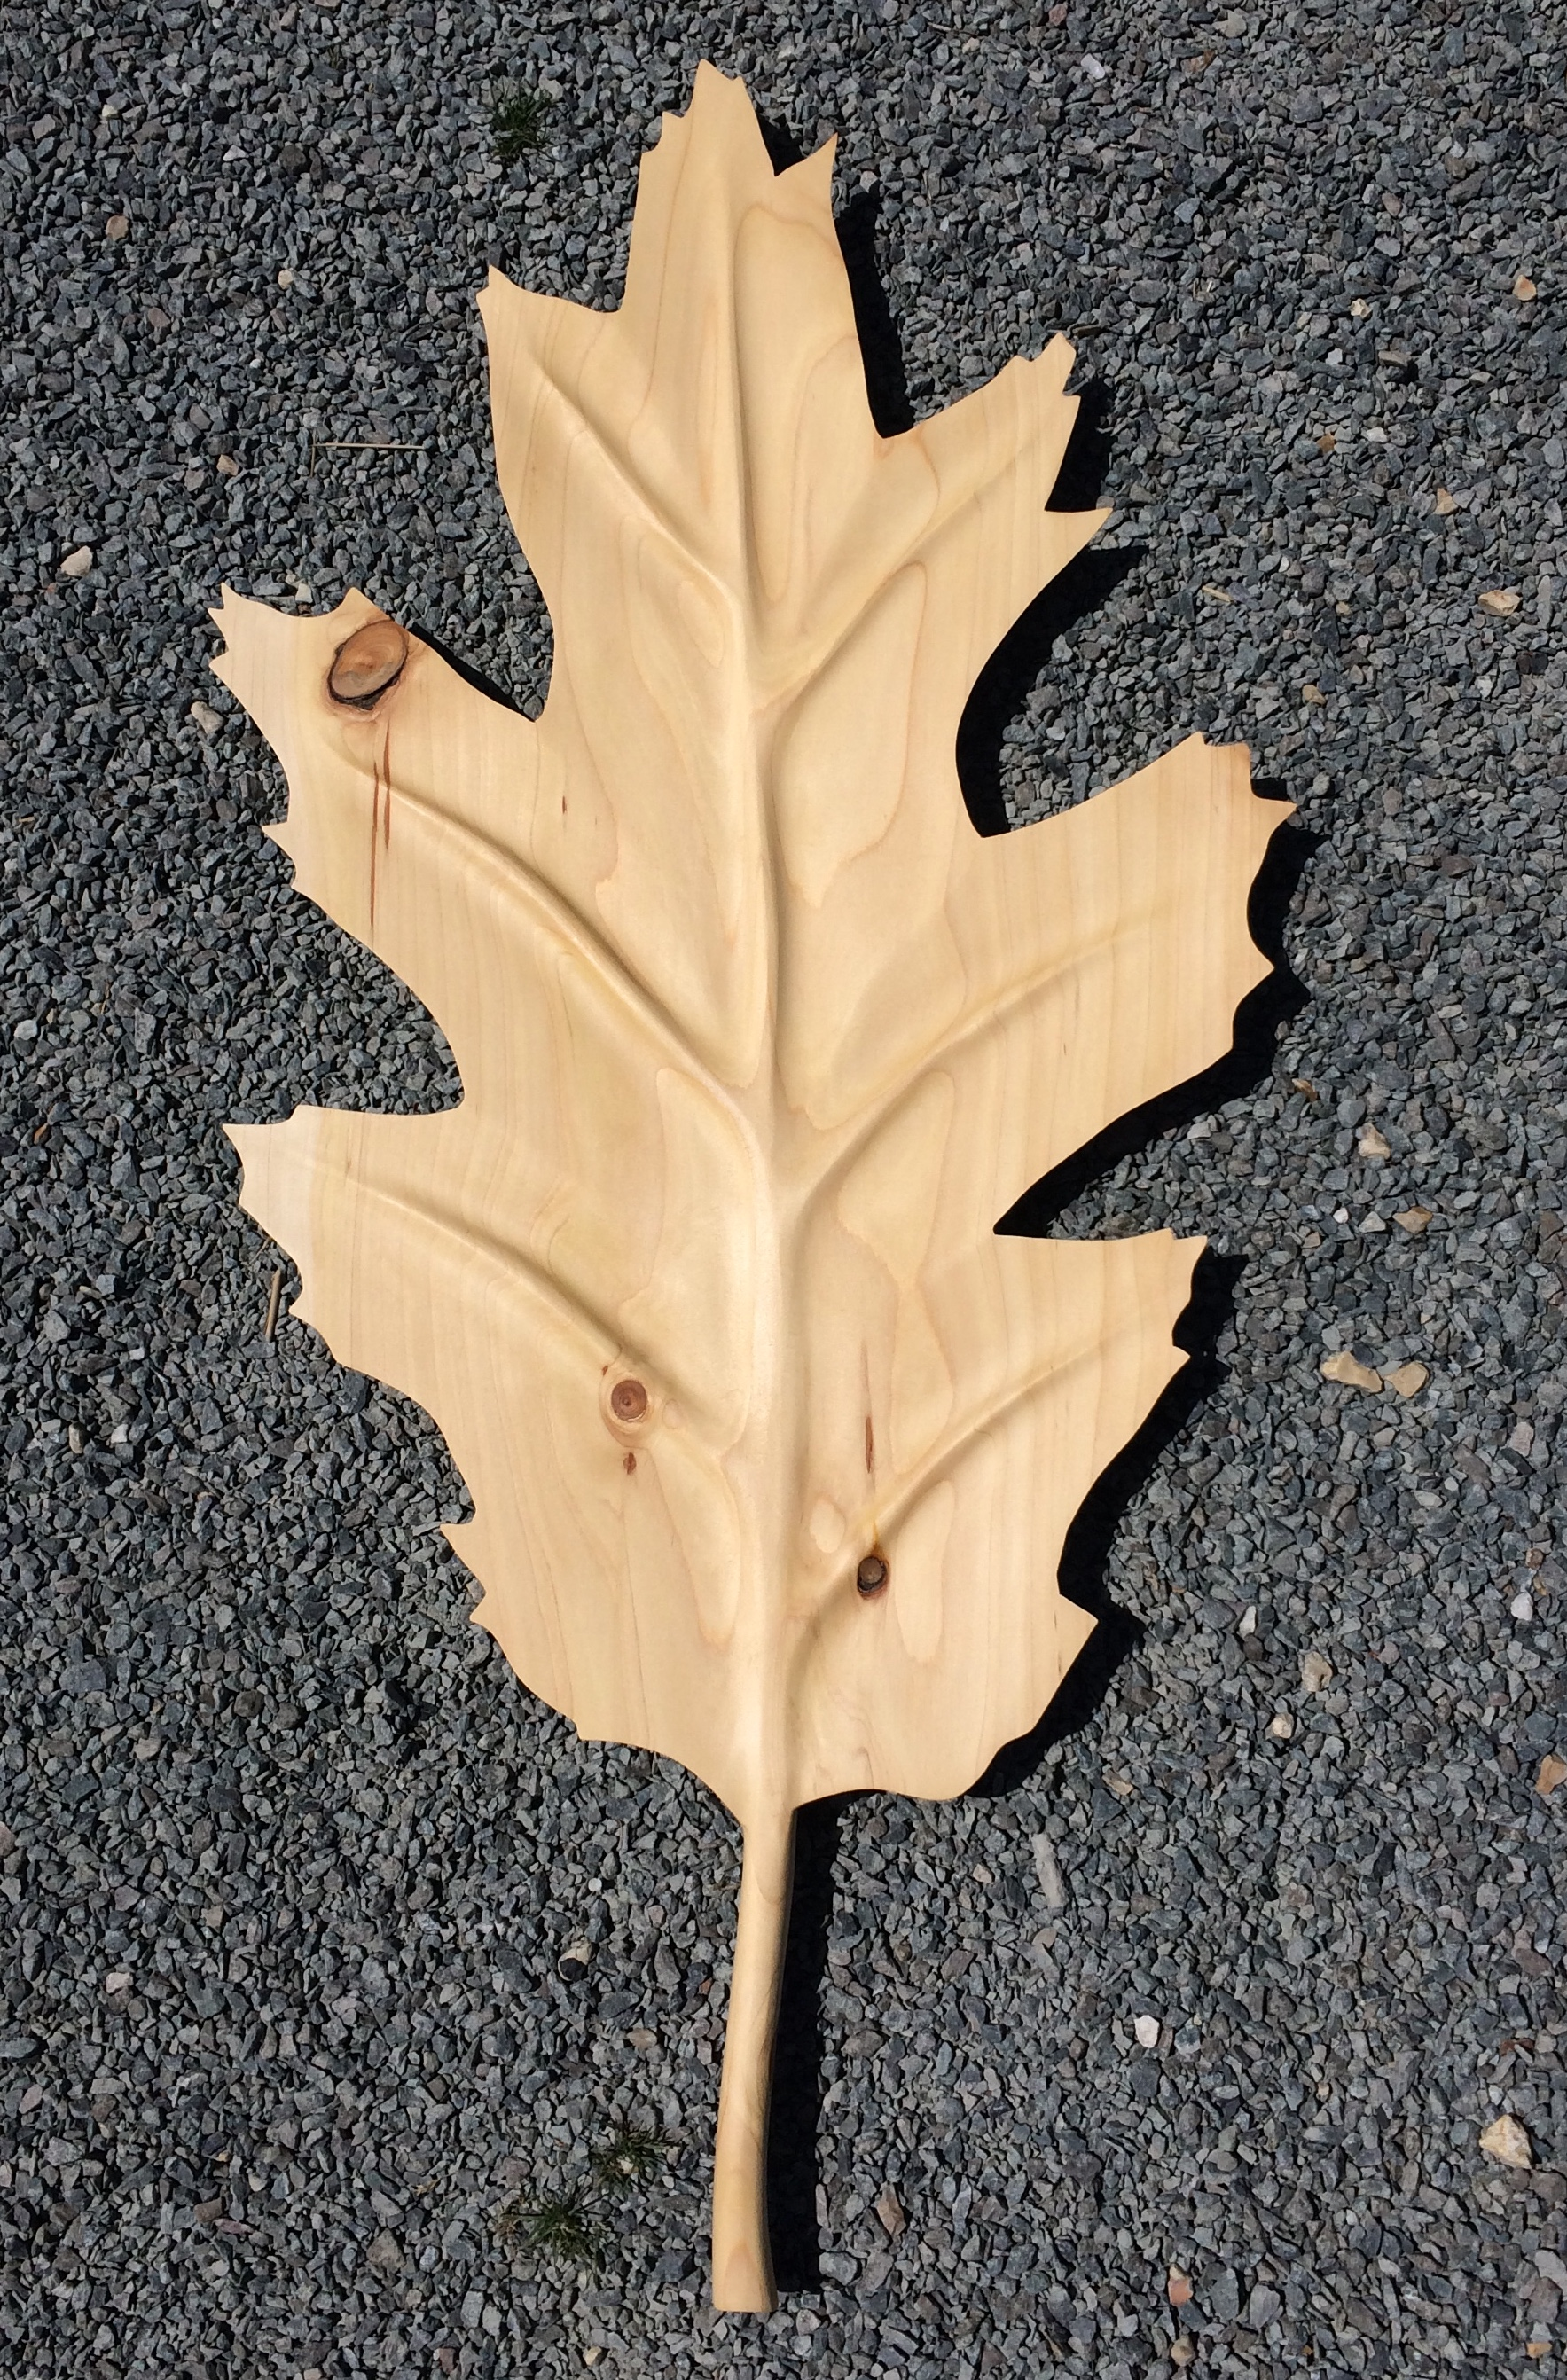 Turkey oak leaf crafted from Leyalndii